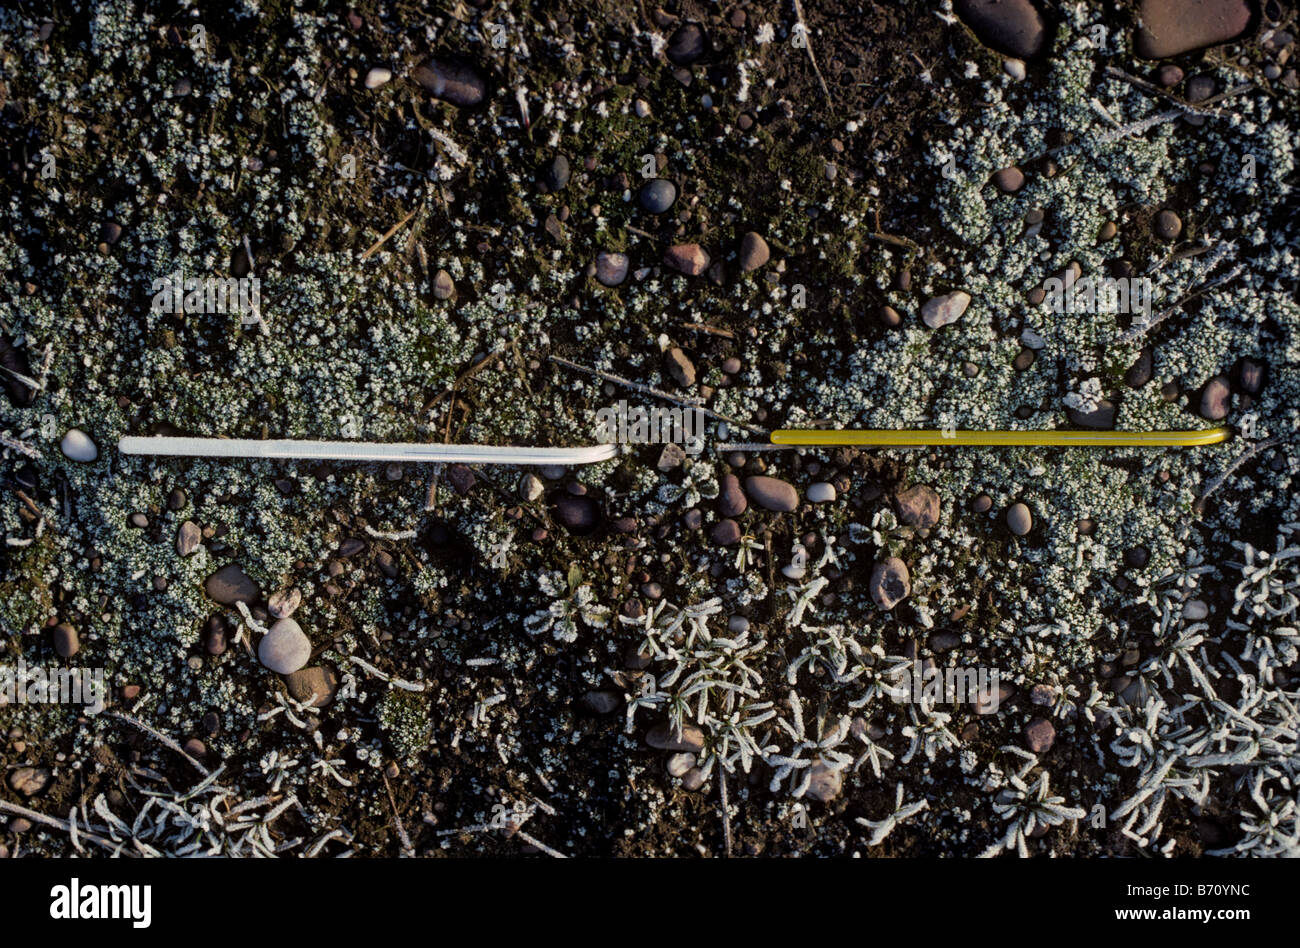 Weather measurement two thermometers buried at different soil depths to measure ground temperatures - Stock Image